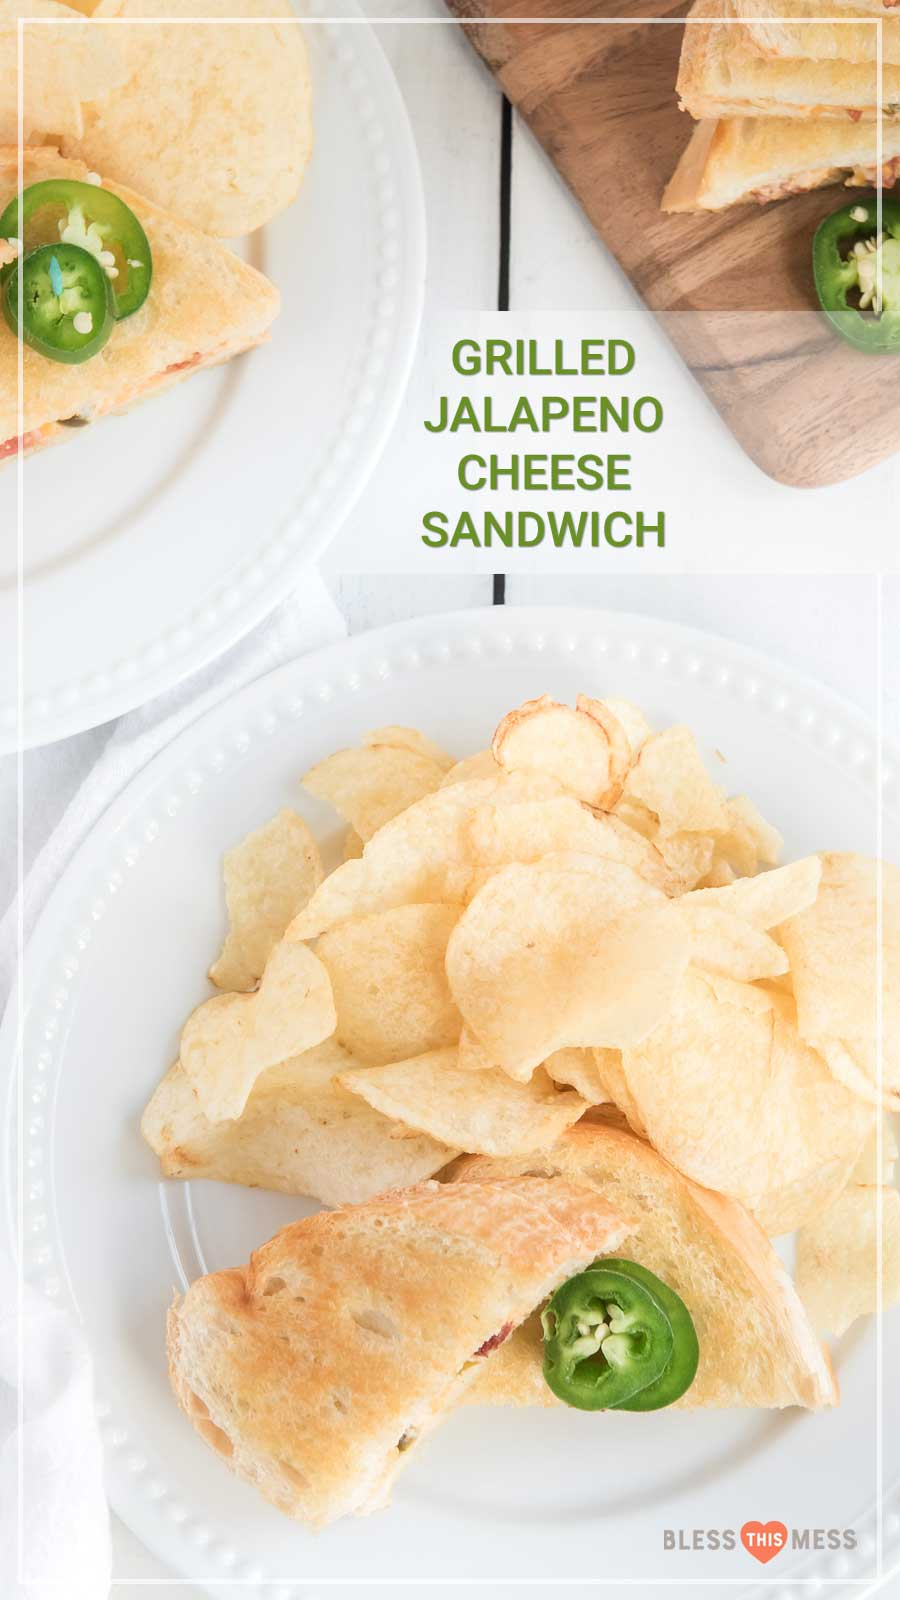 Jalapeno popper grilled cheese sandwich with potato chips